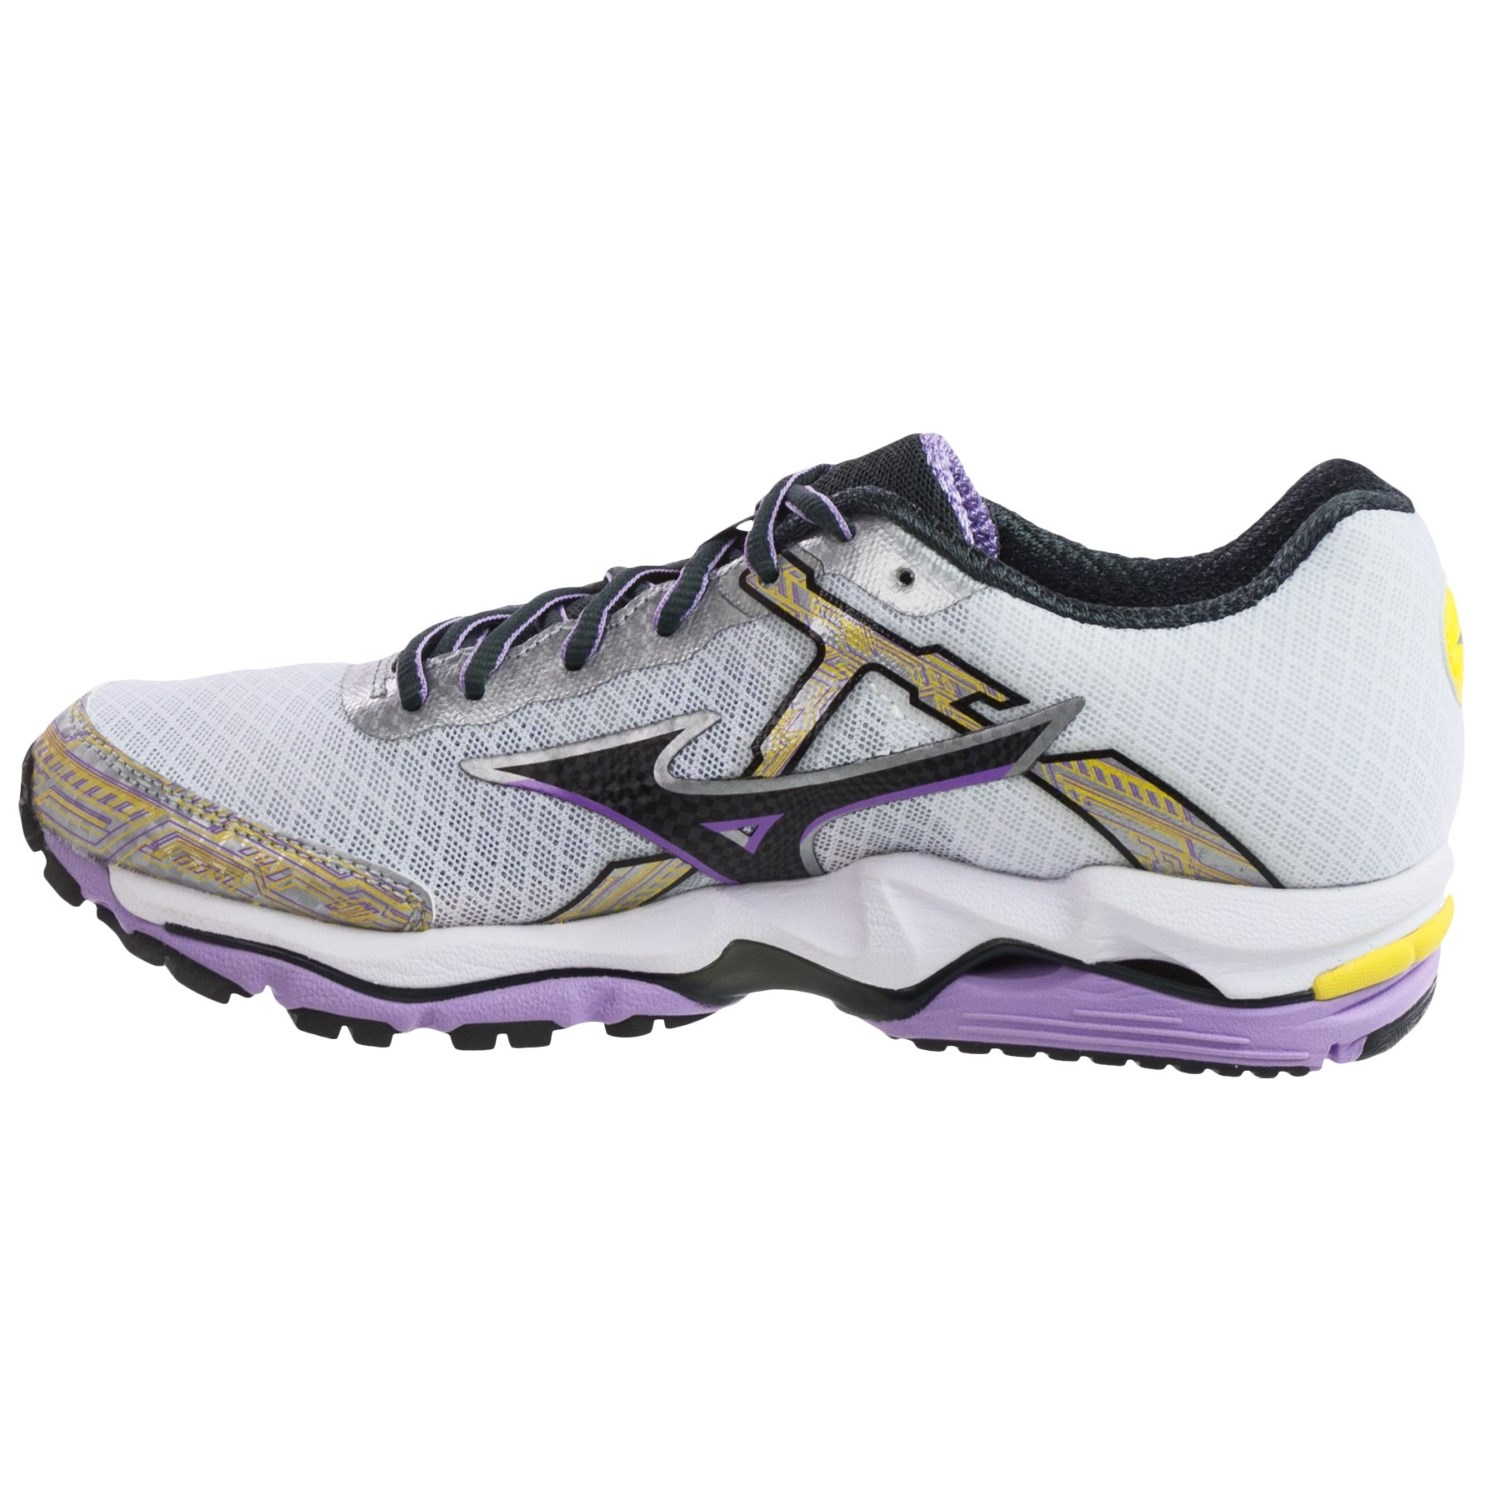 mizuno wave enigma 4 running shoes for women save 75. Black Bedroom Furniture Sets. Home Design Ideas